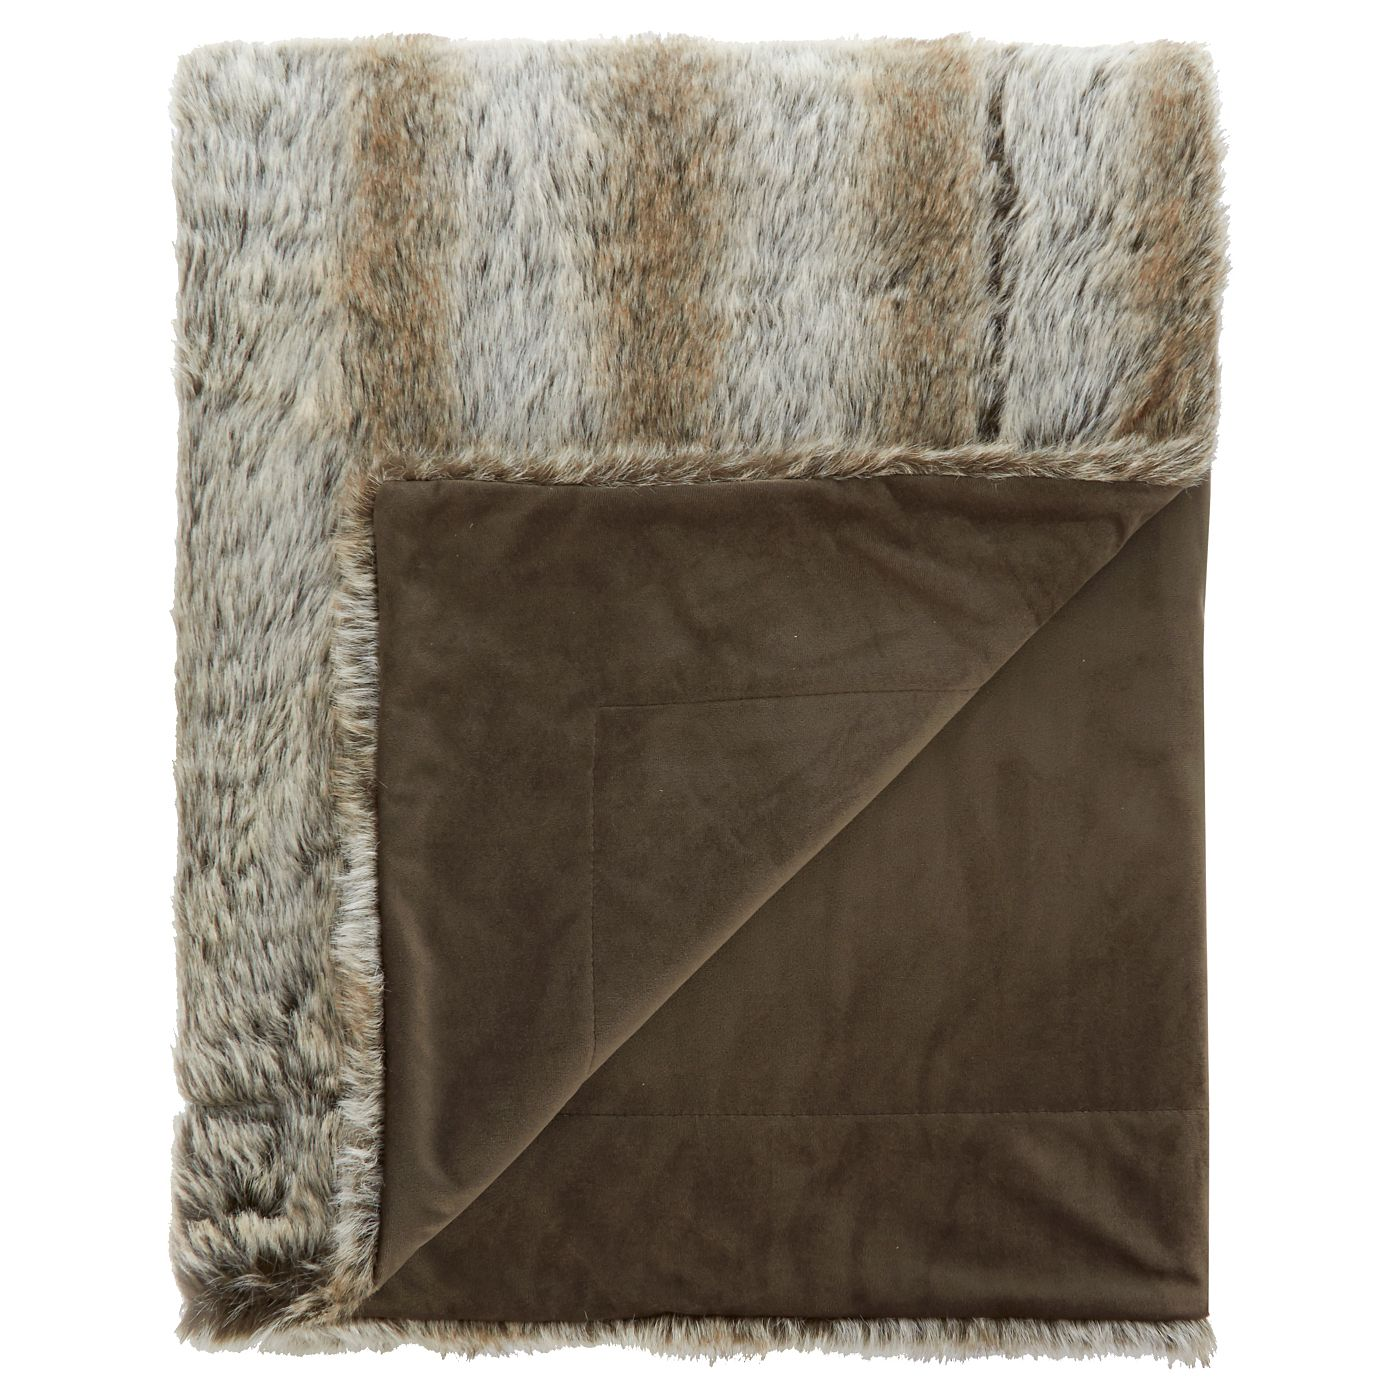 George Home Letter F Throw